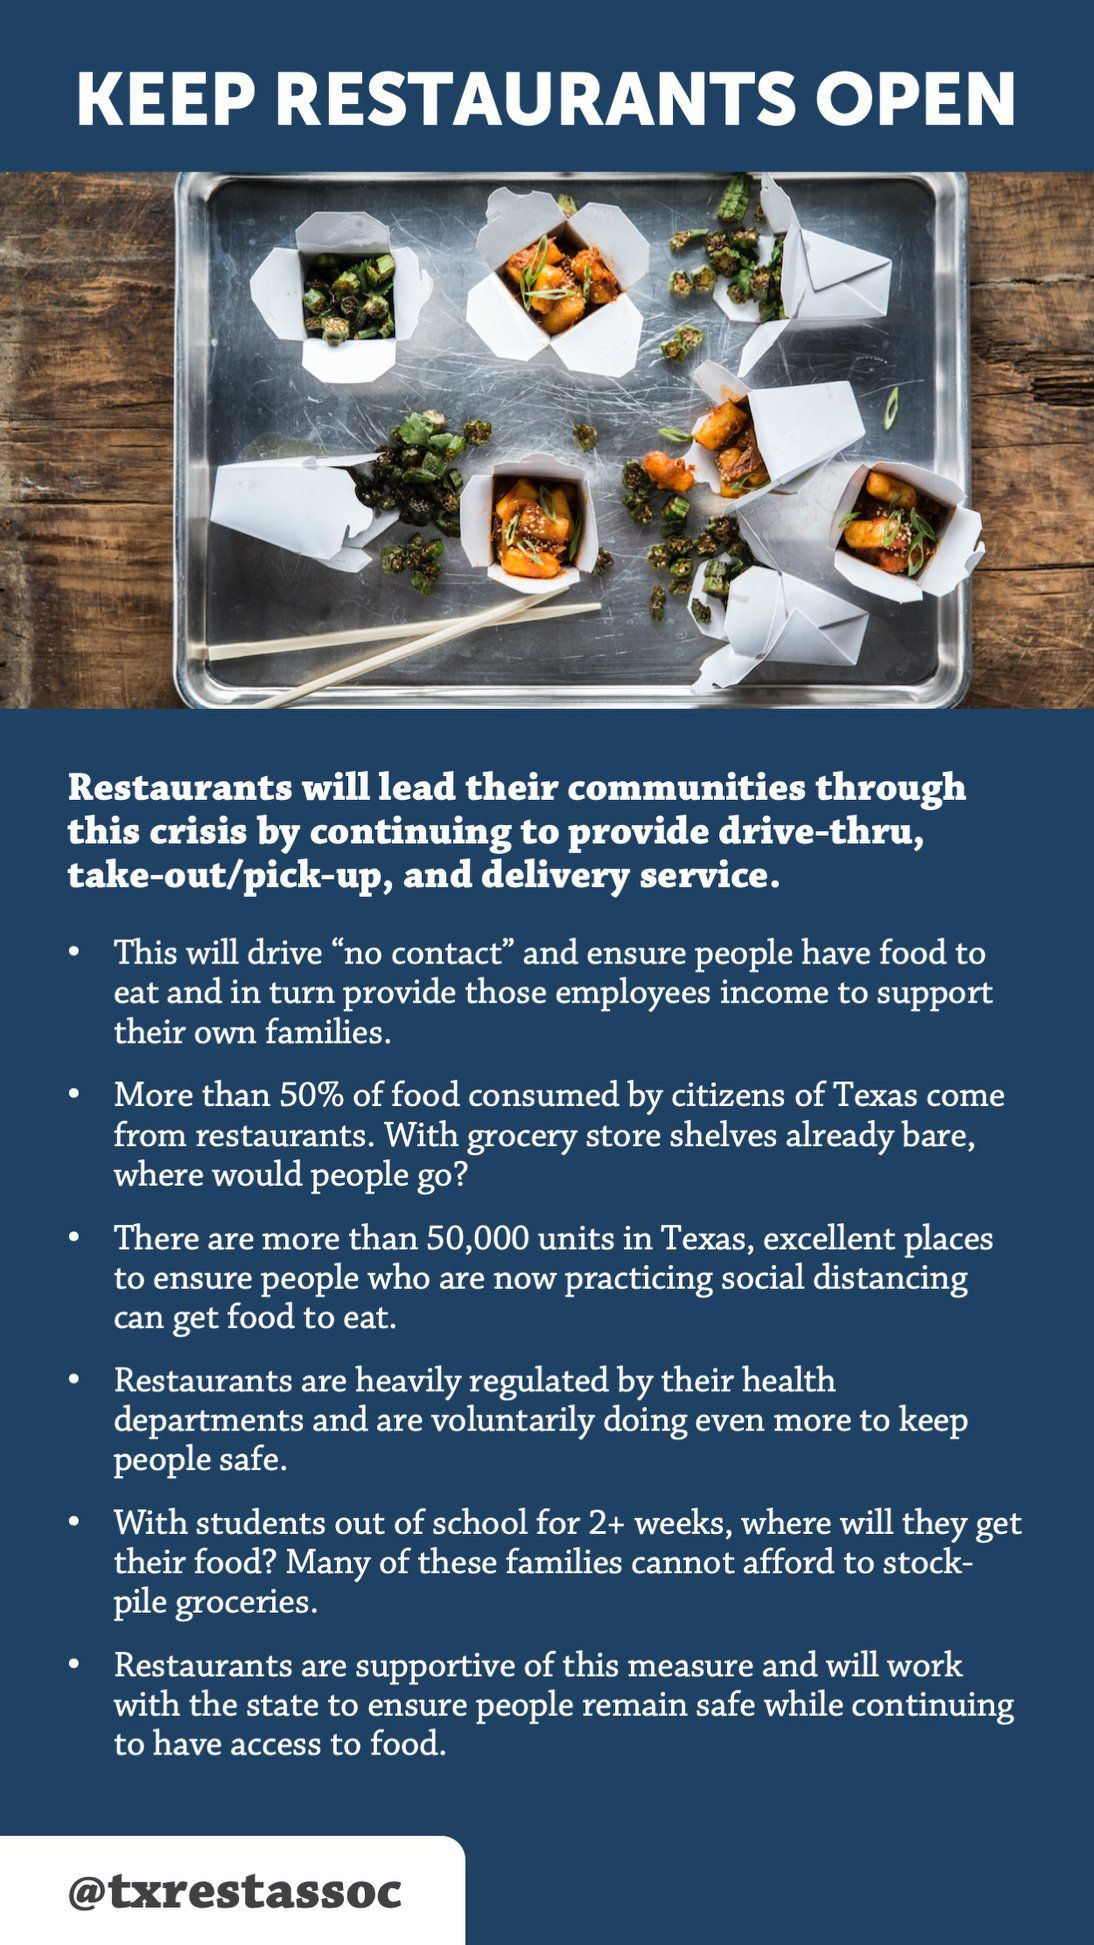 Texas Restaurant Association's Facebook post asking to keep restaurants open in the state